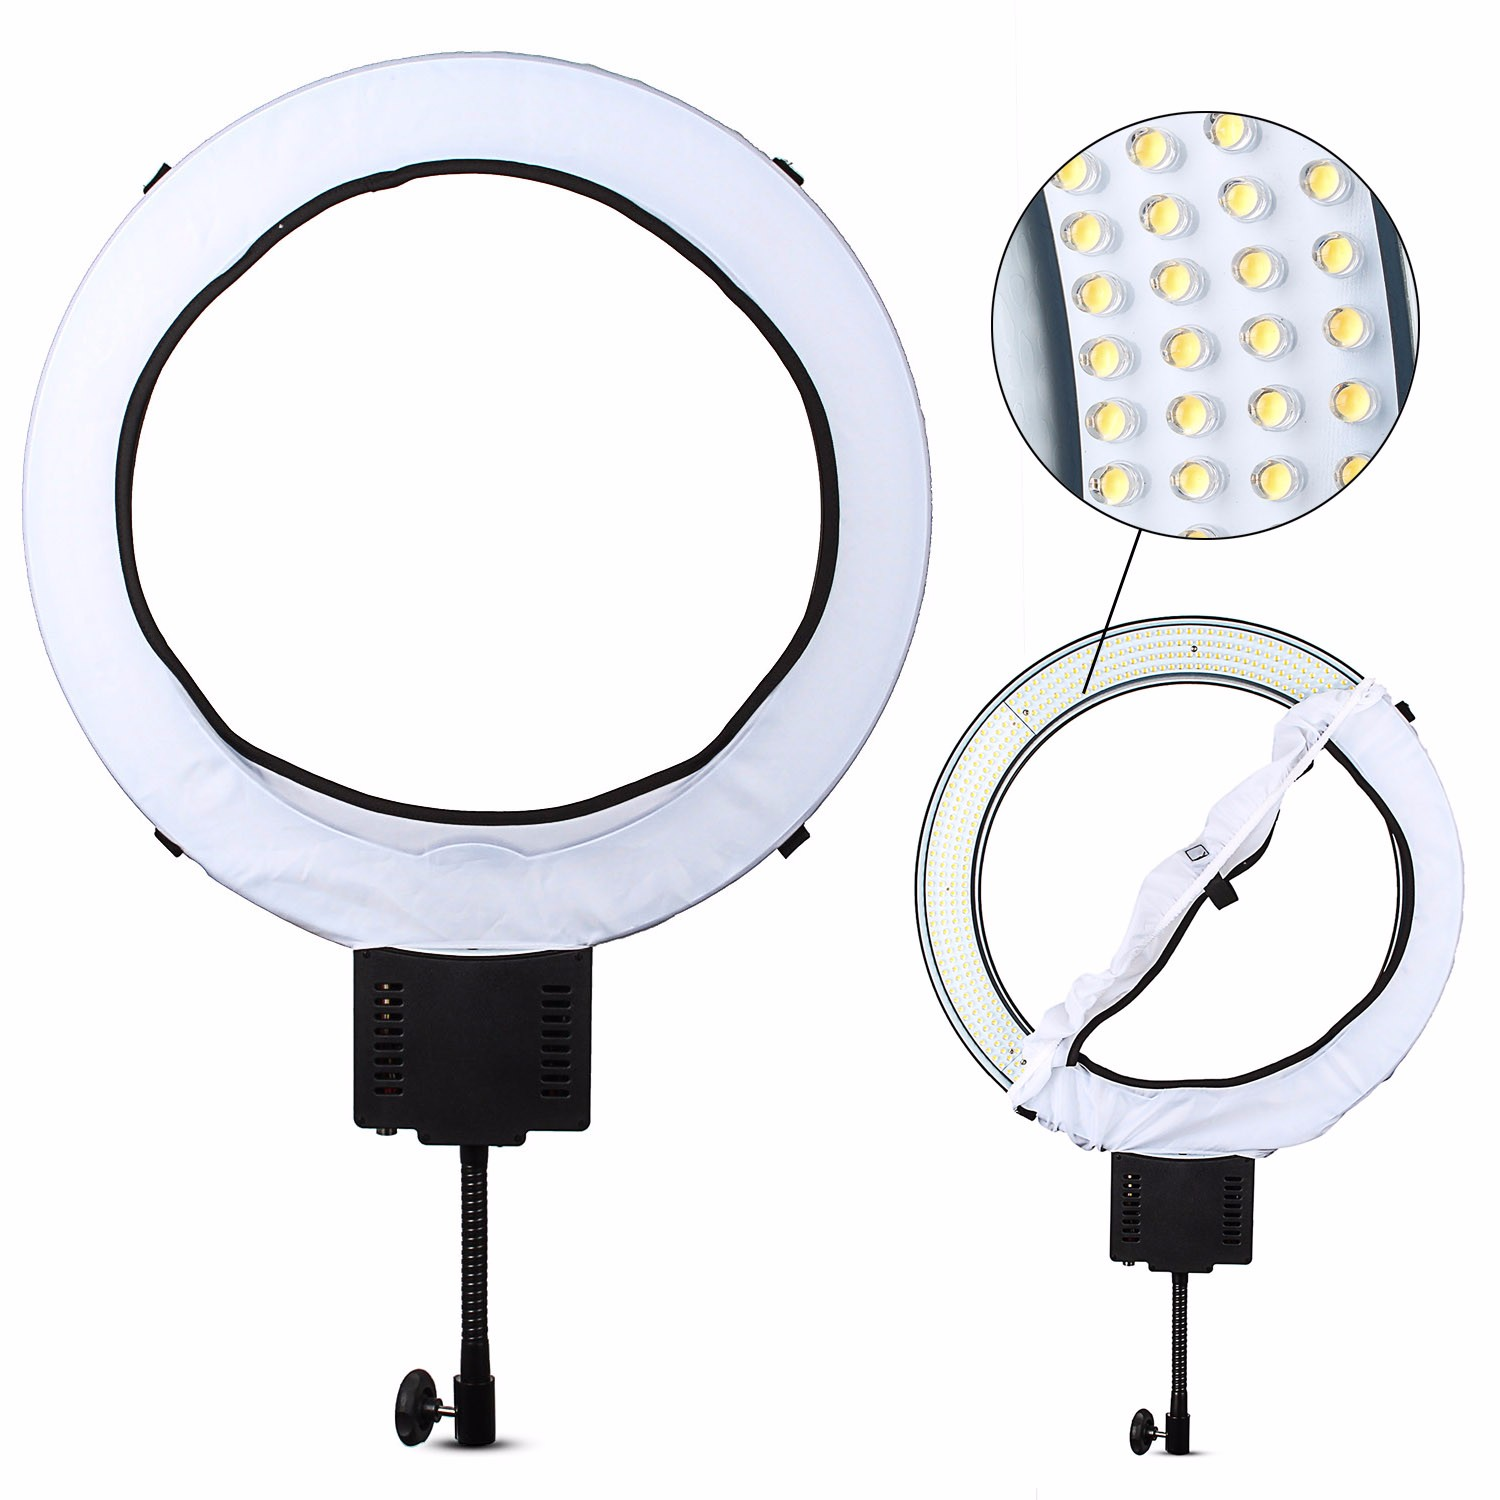 NanGuang CN-R640 5600K LED Video Studio Light 640 LED Macro Photography Ring Light Day Lighting Annular Lamp For DSLR Camera